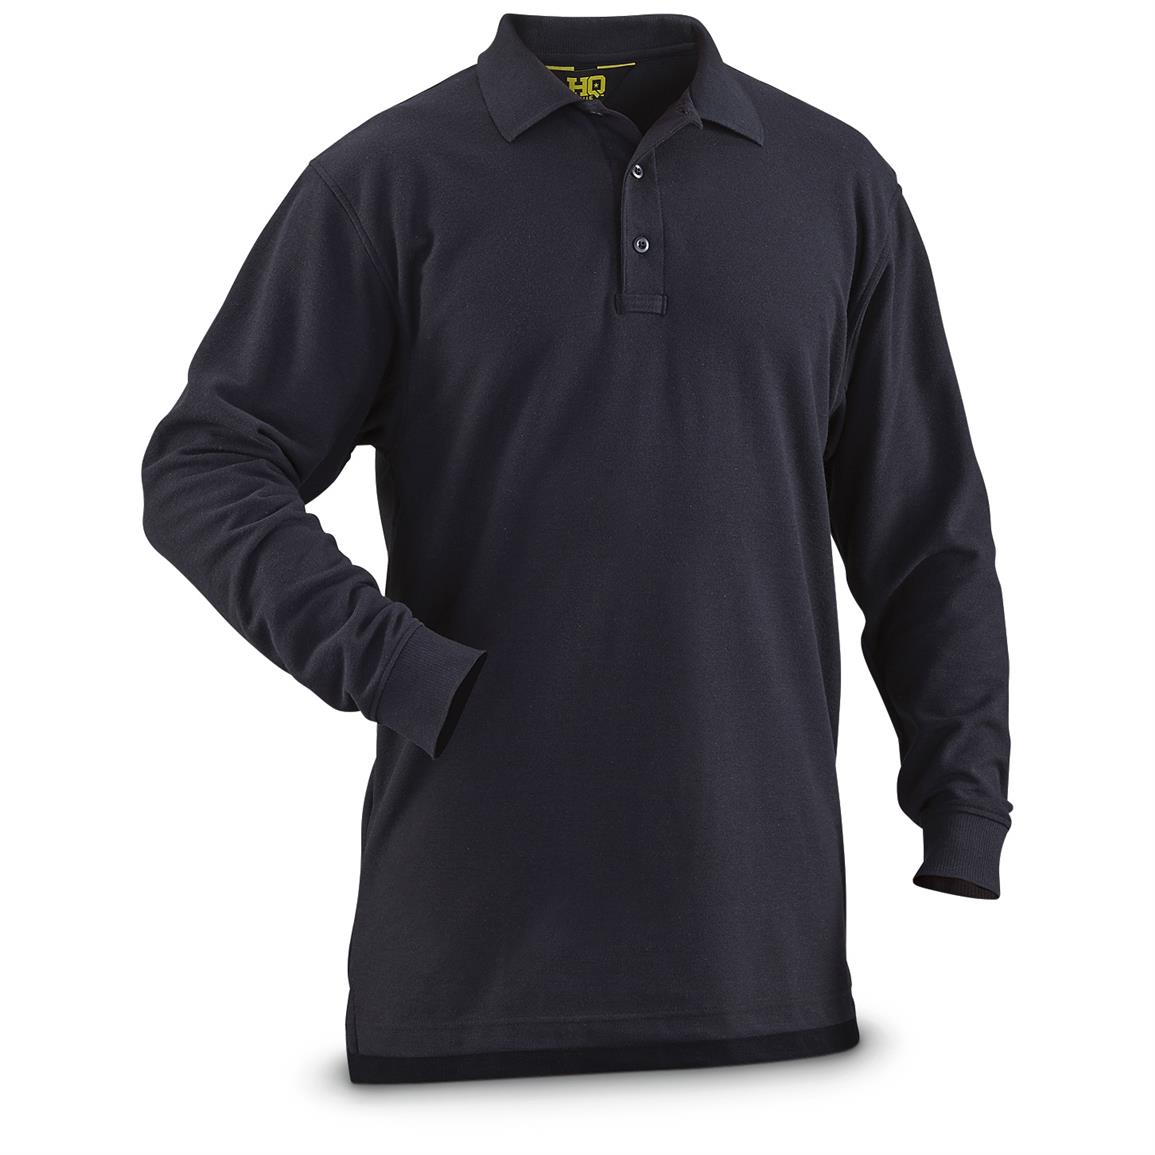 HQ ISSUE Men's Long-Sleeve Tactical Polo Shirt, Navy